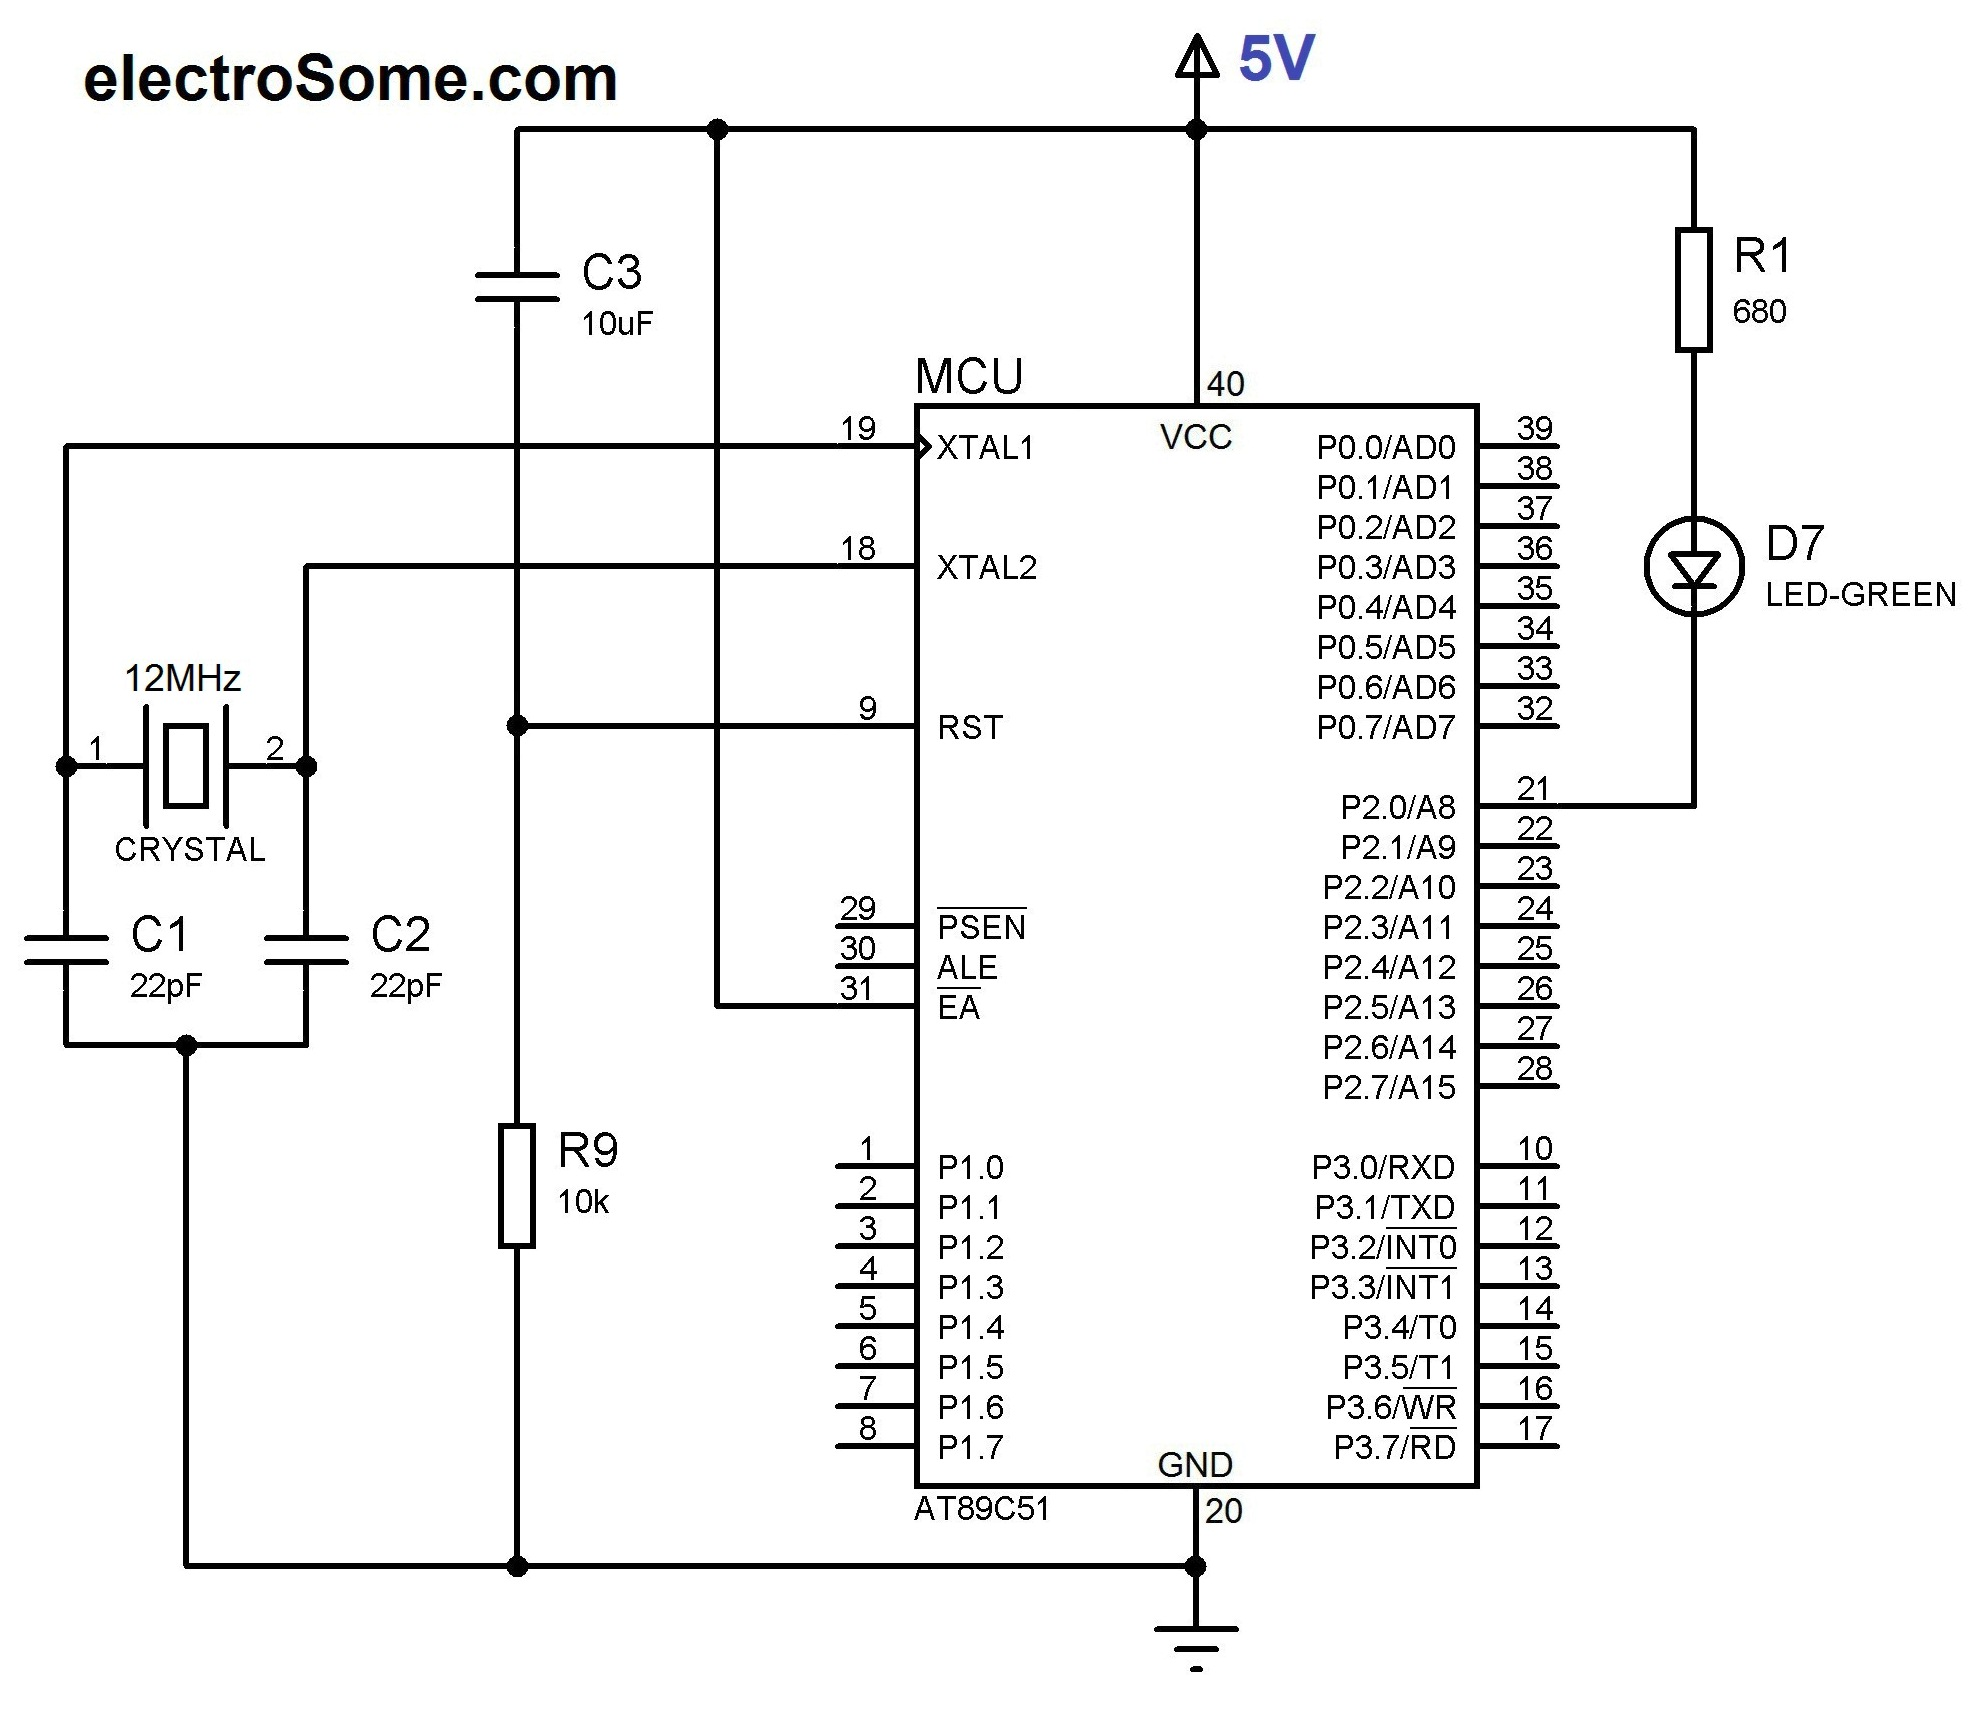 Led Blinking Using 8051 Microcontroller And Keil C At89c51 Stepper Motor Driver Pcb Circuit Basiccircuit Diagram